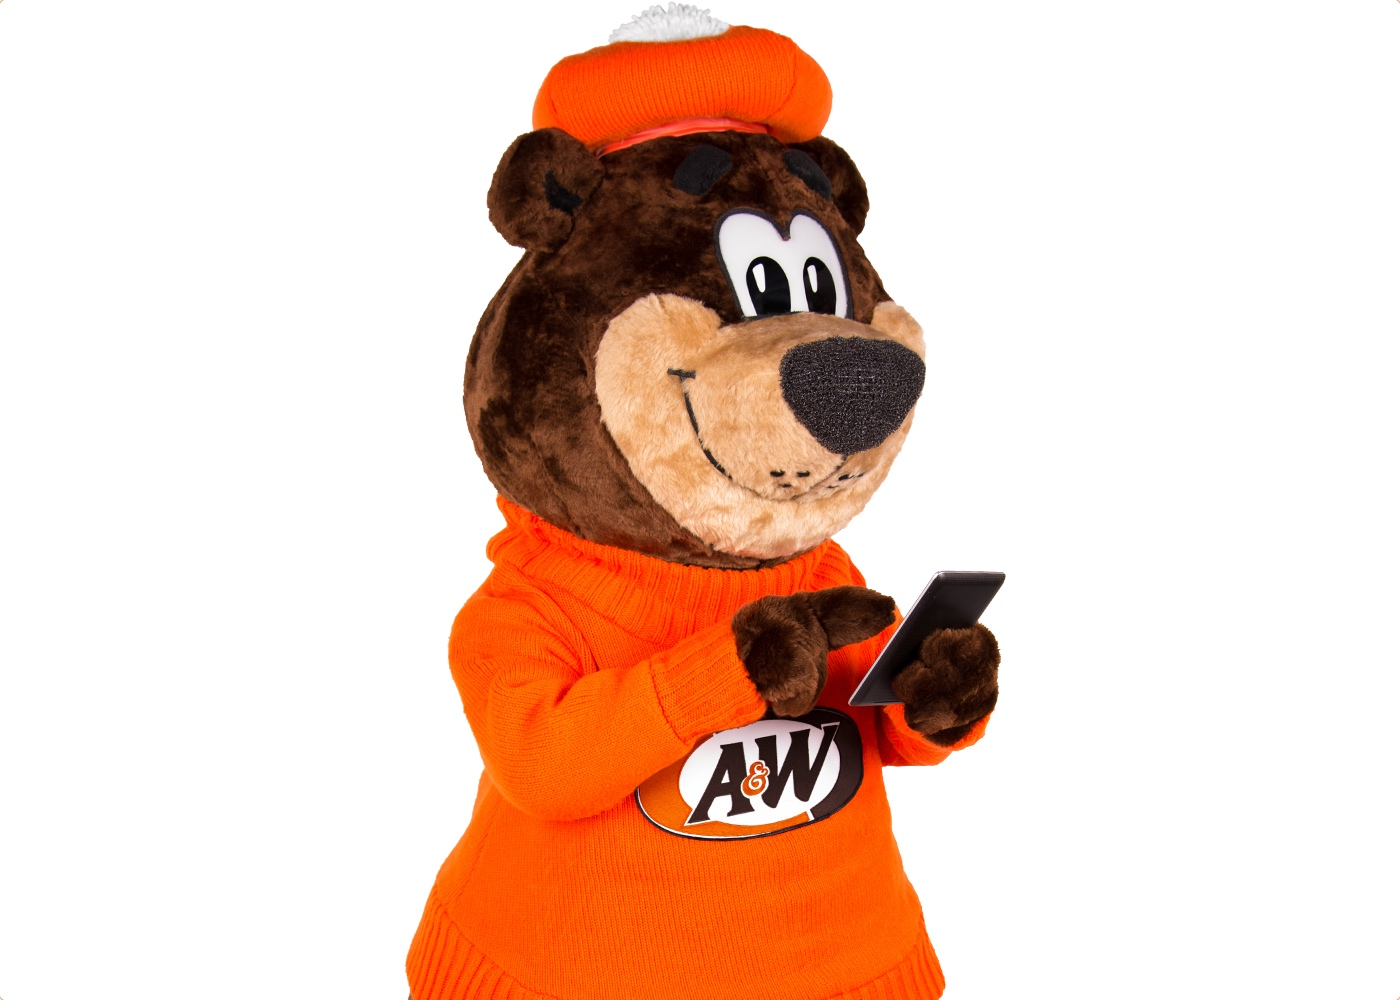 Rooty the Great Root Bear texting on phone